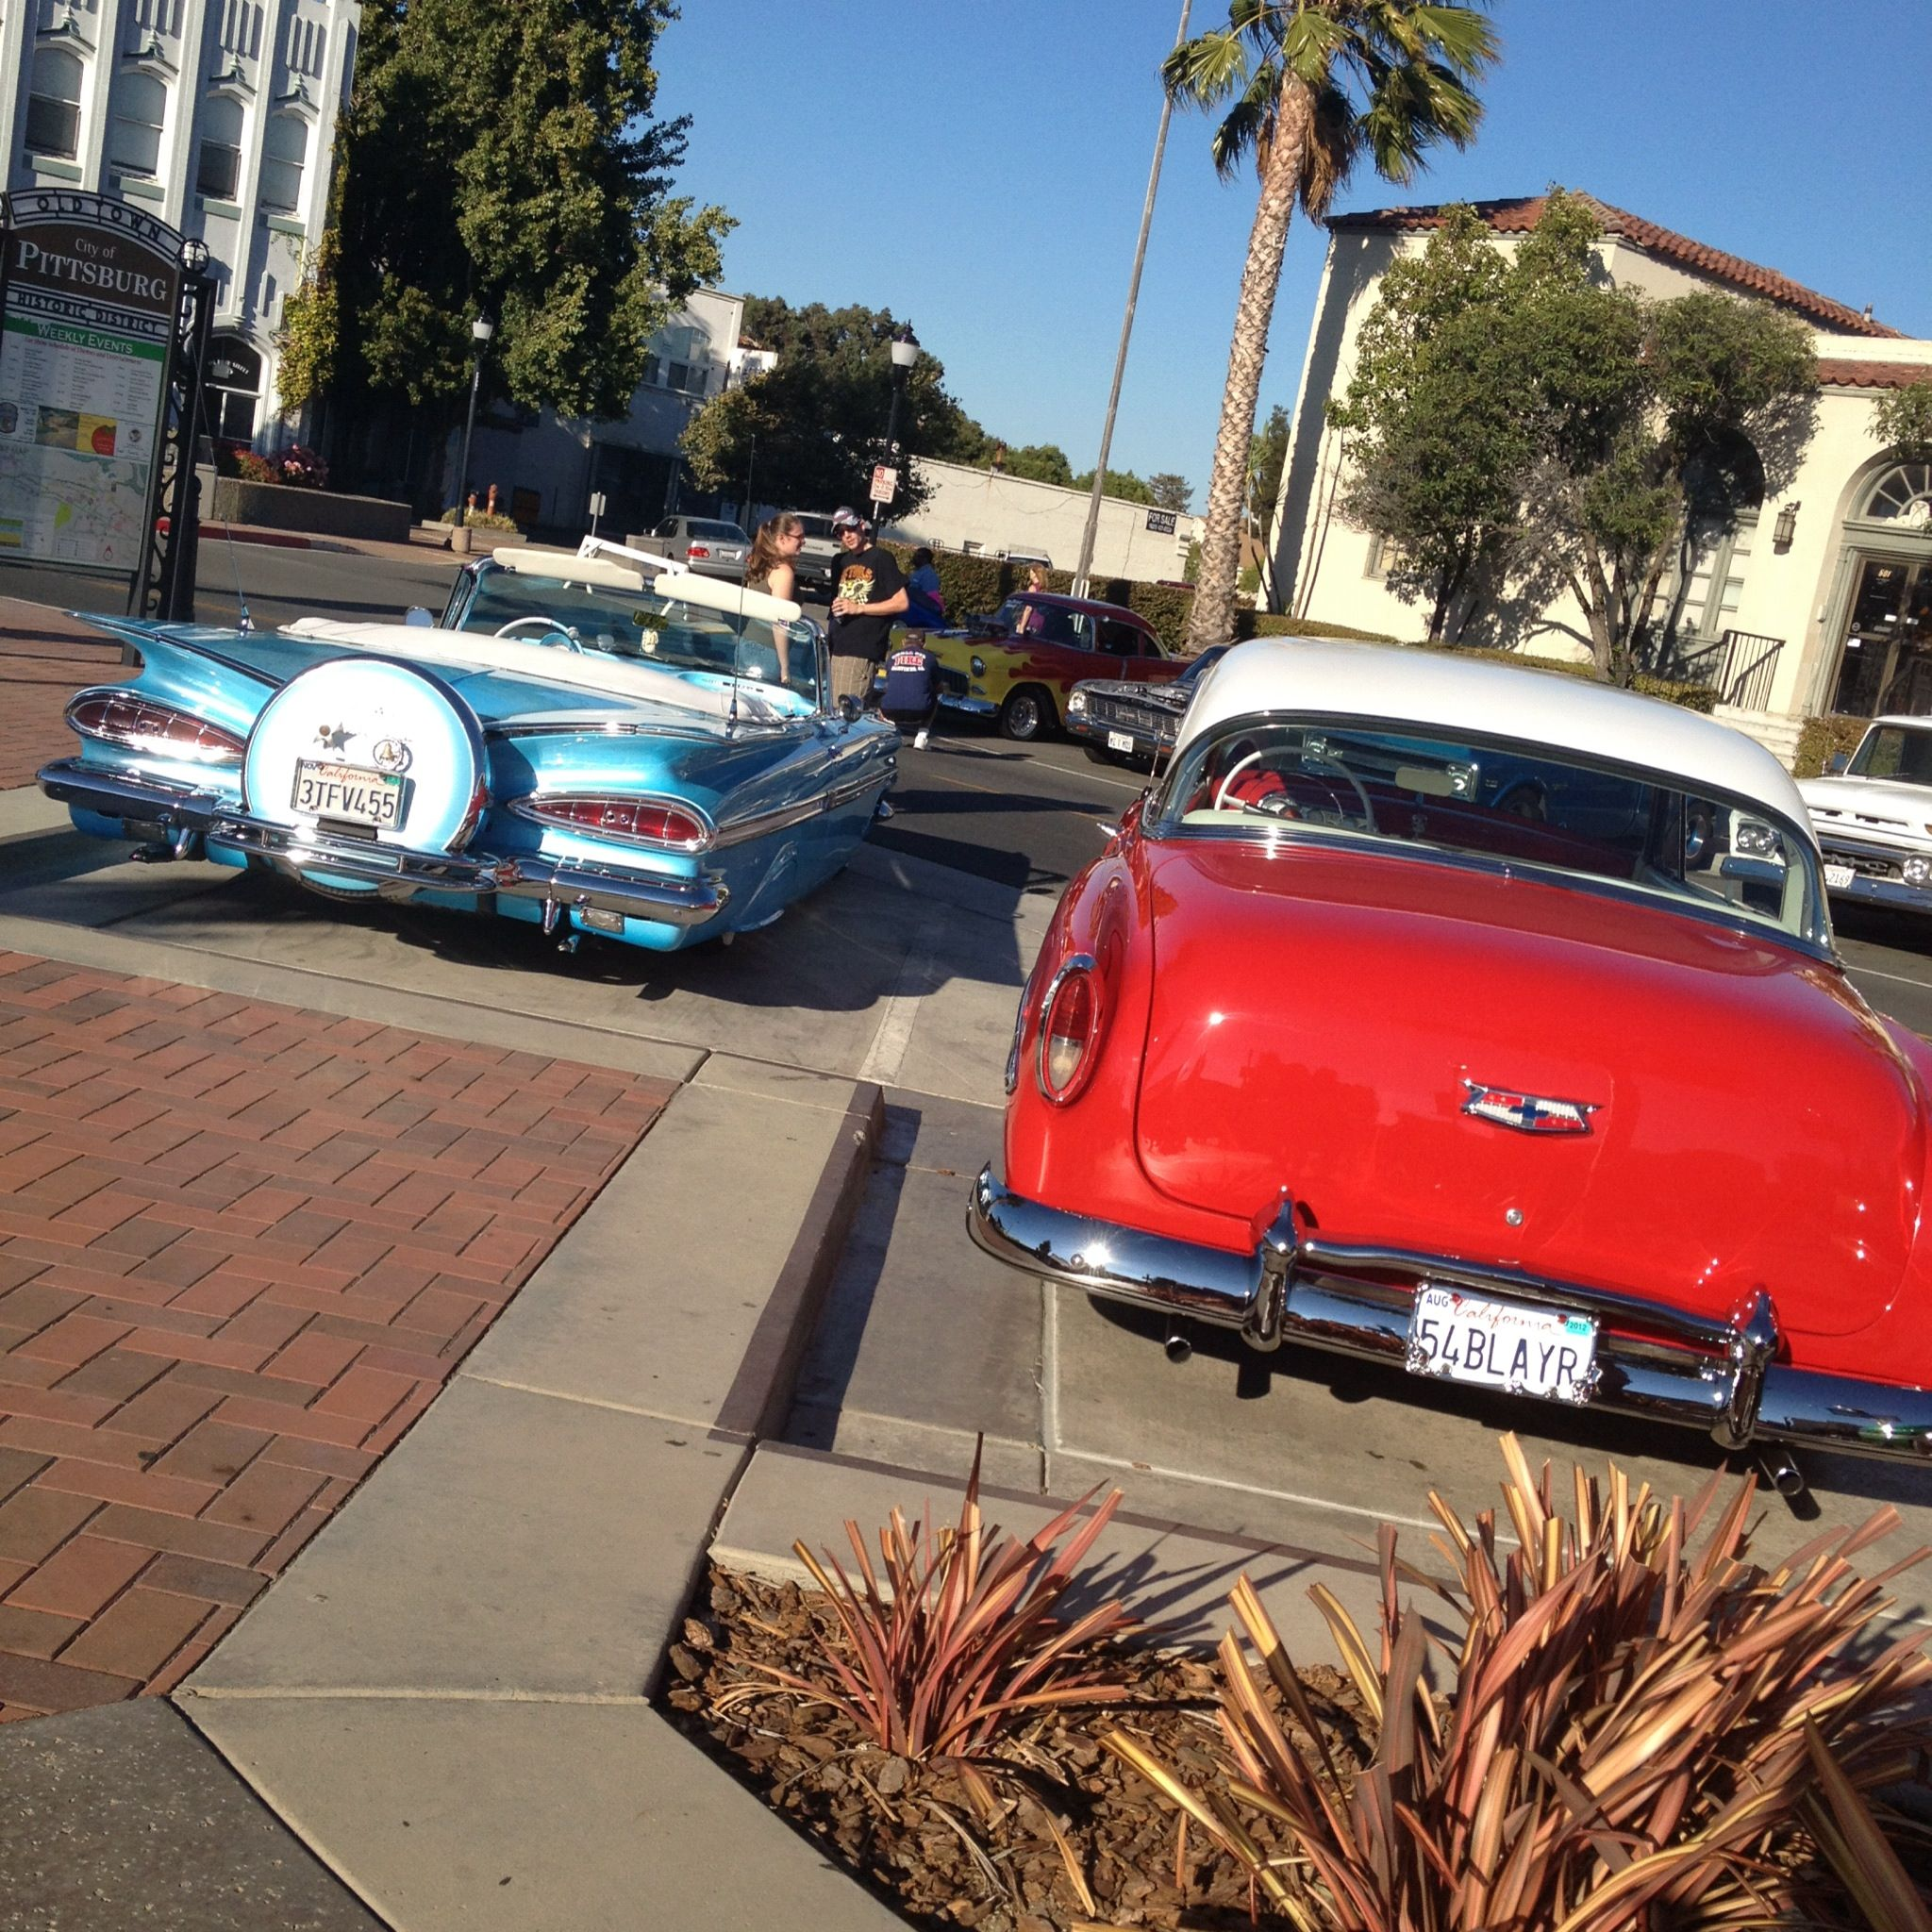 Old Town Pittsburg Car Show Pittsburg CA Weasels Pinterest - Bay area car show events